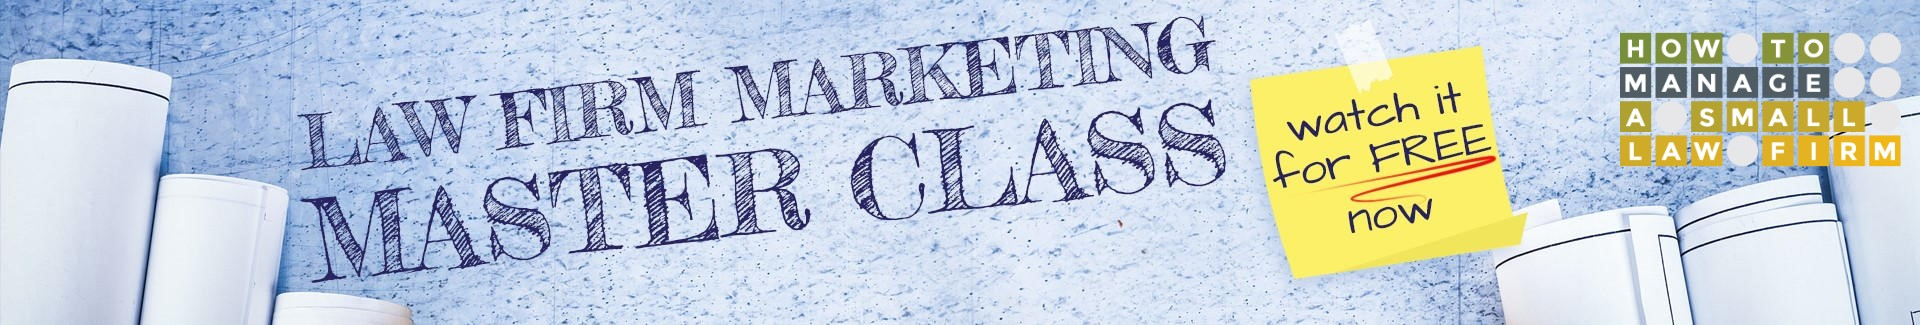 law firm marketing master class: the marketing blueprint workbook and video